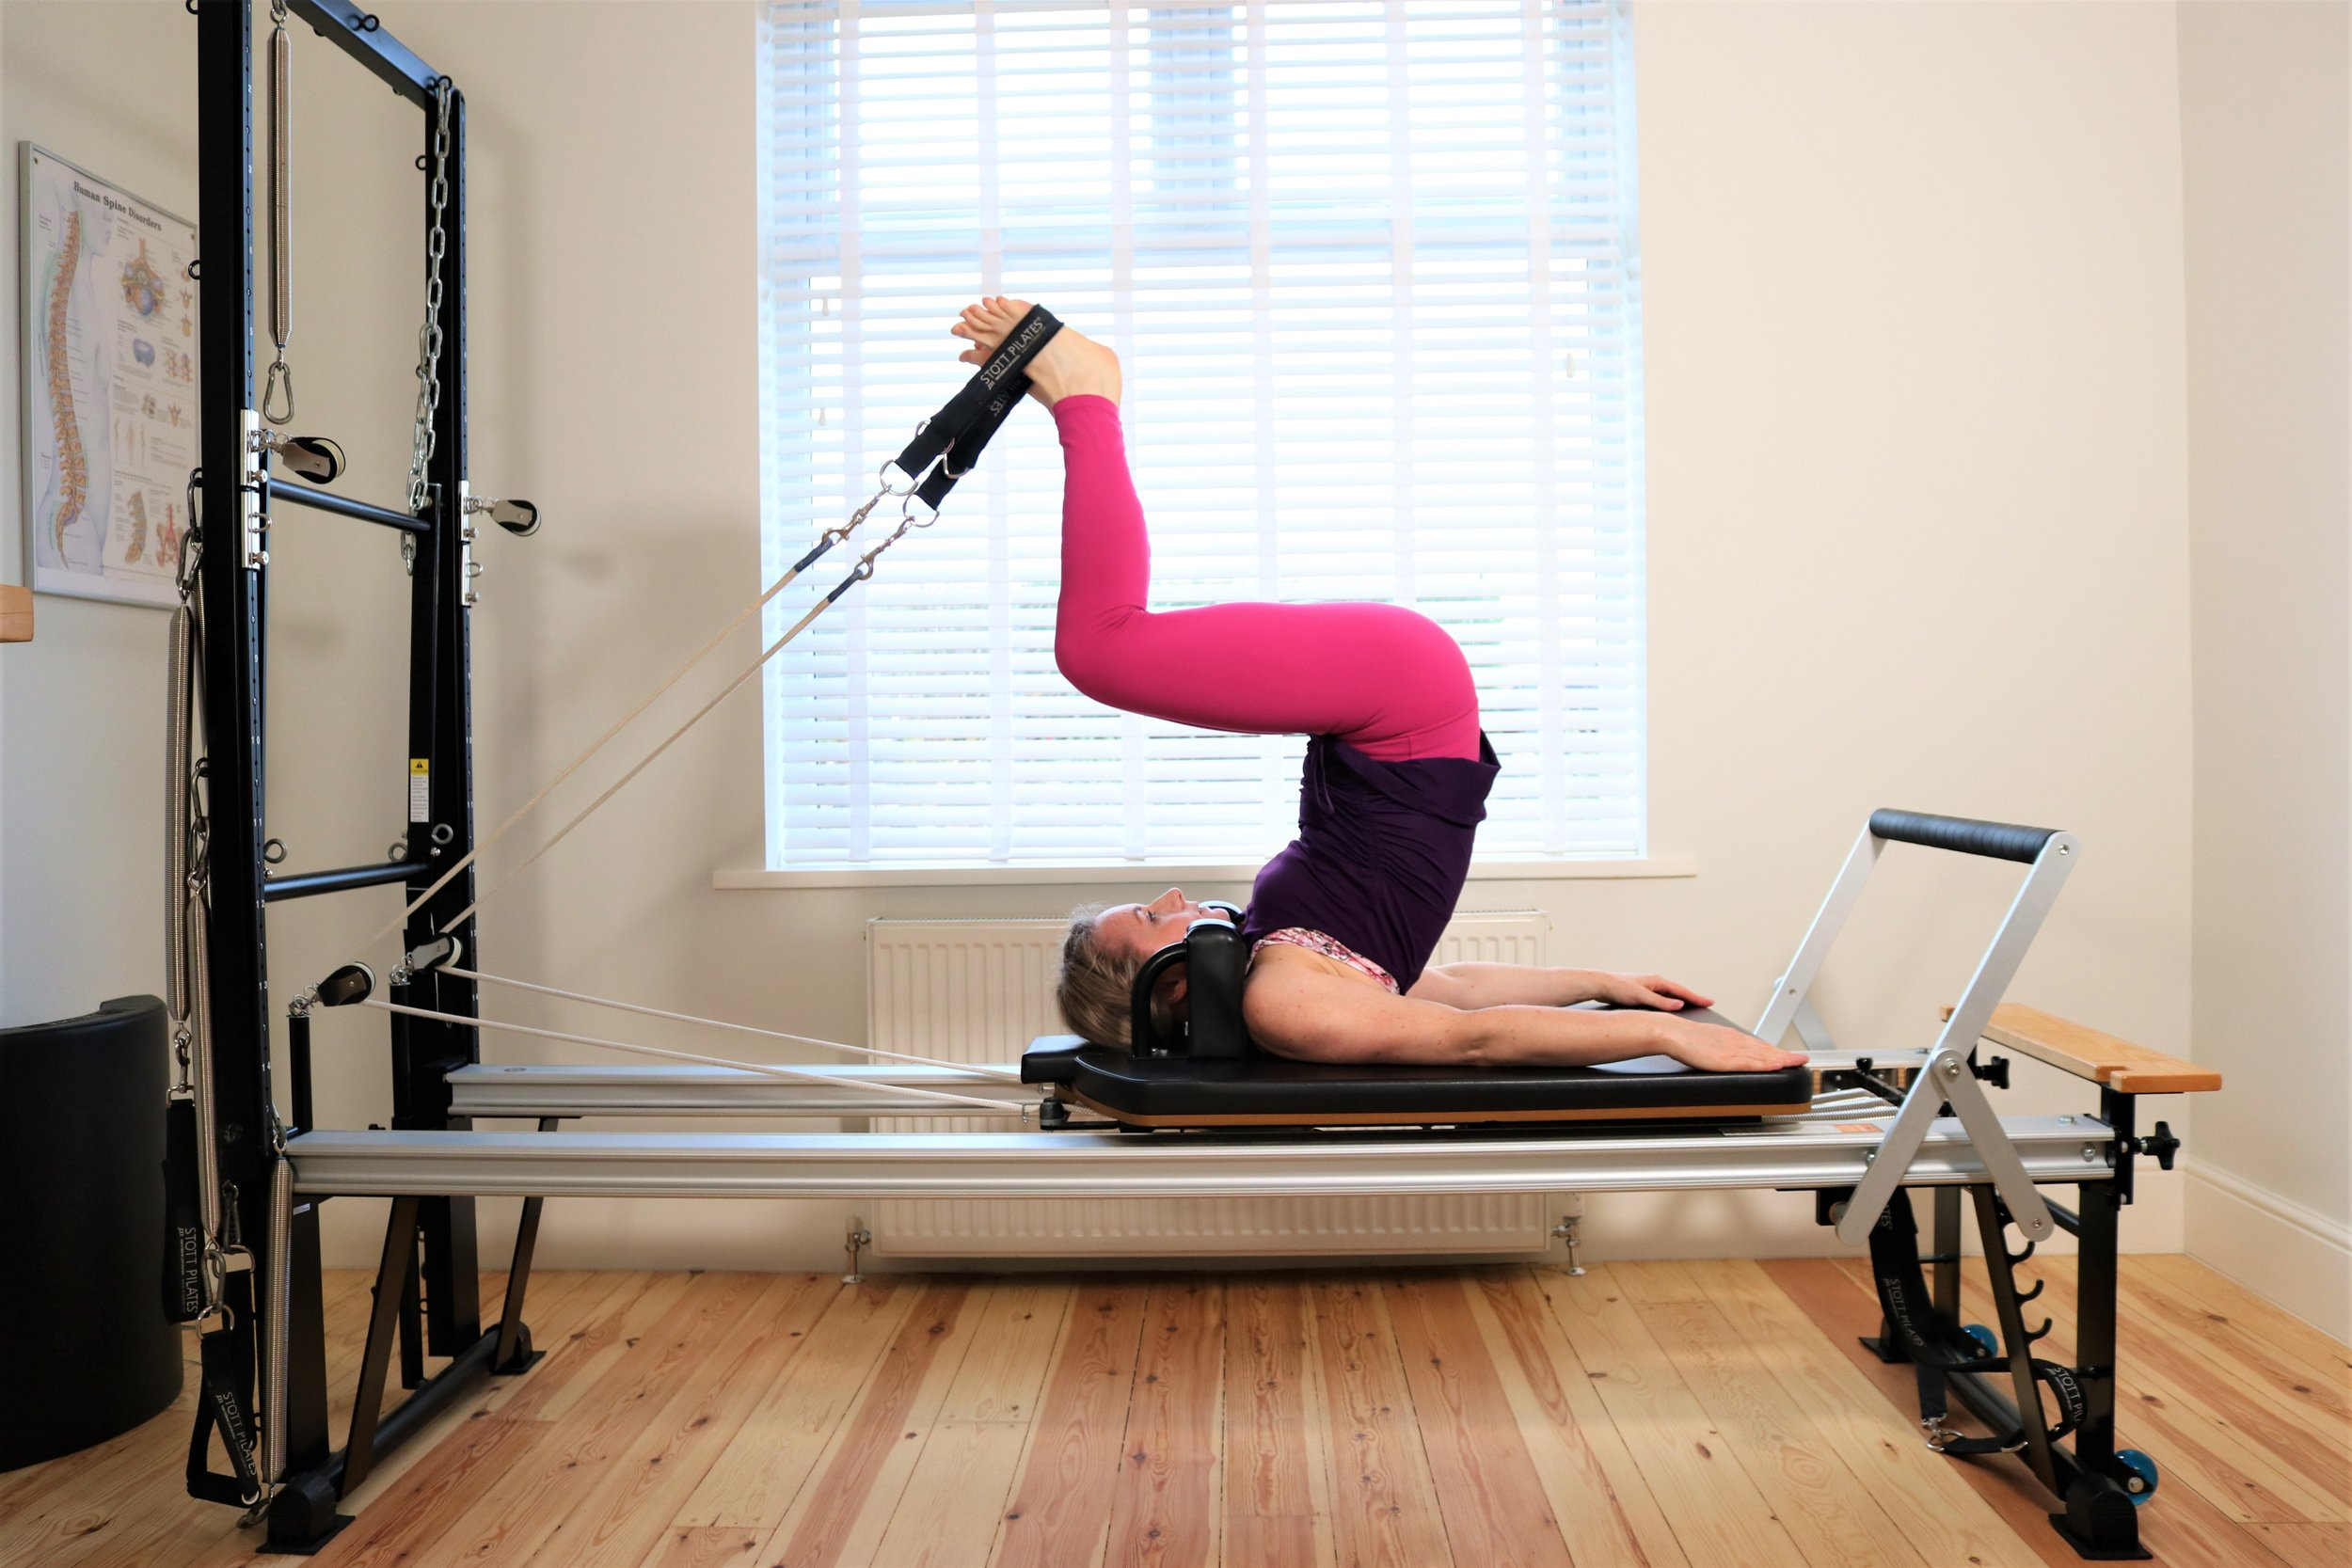 Stretching the spine on the Reformer